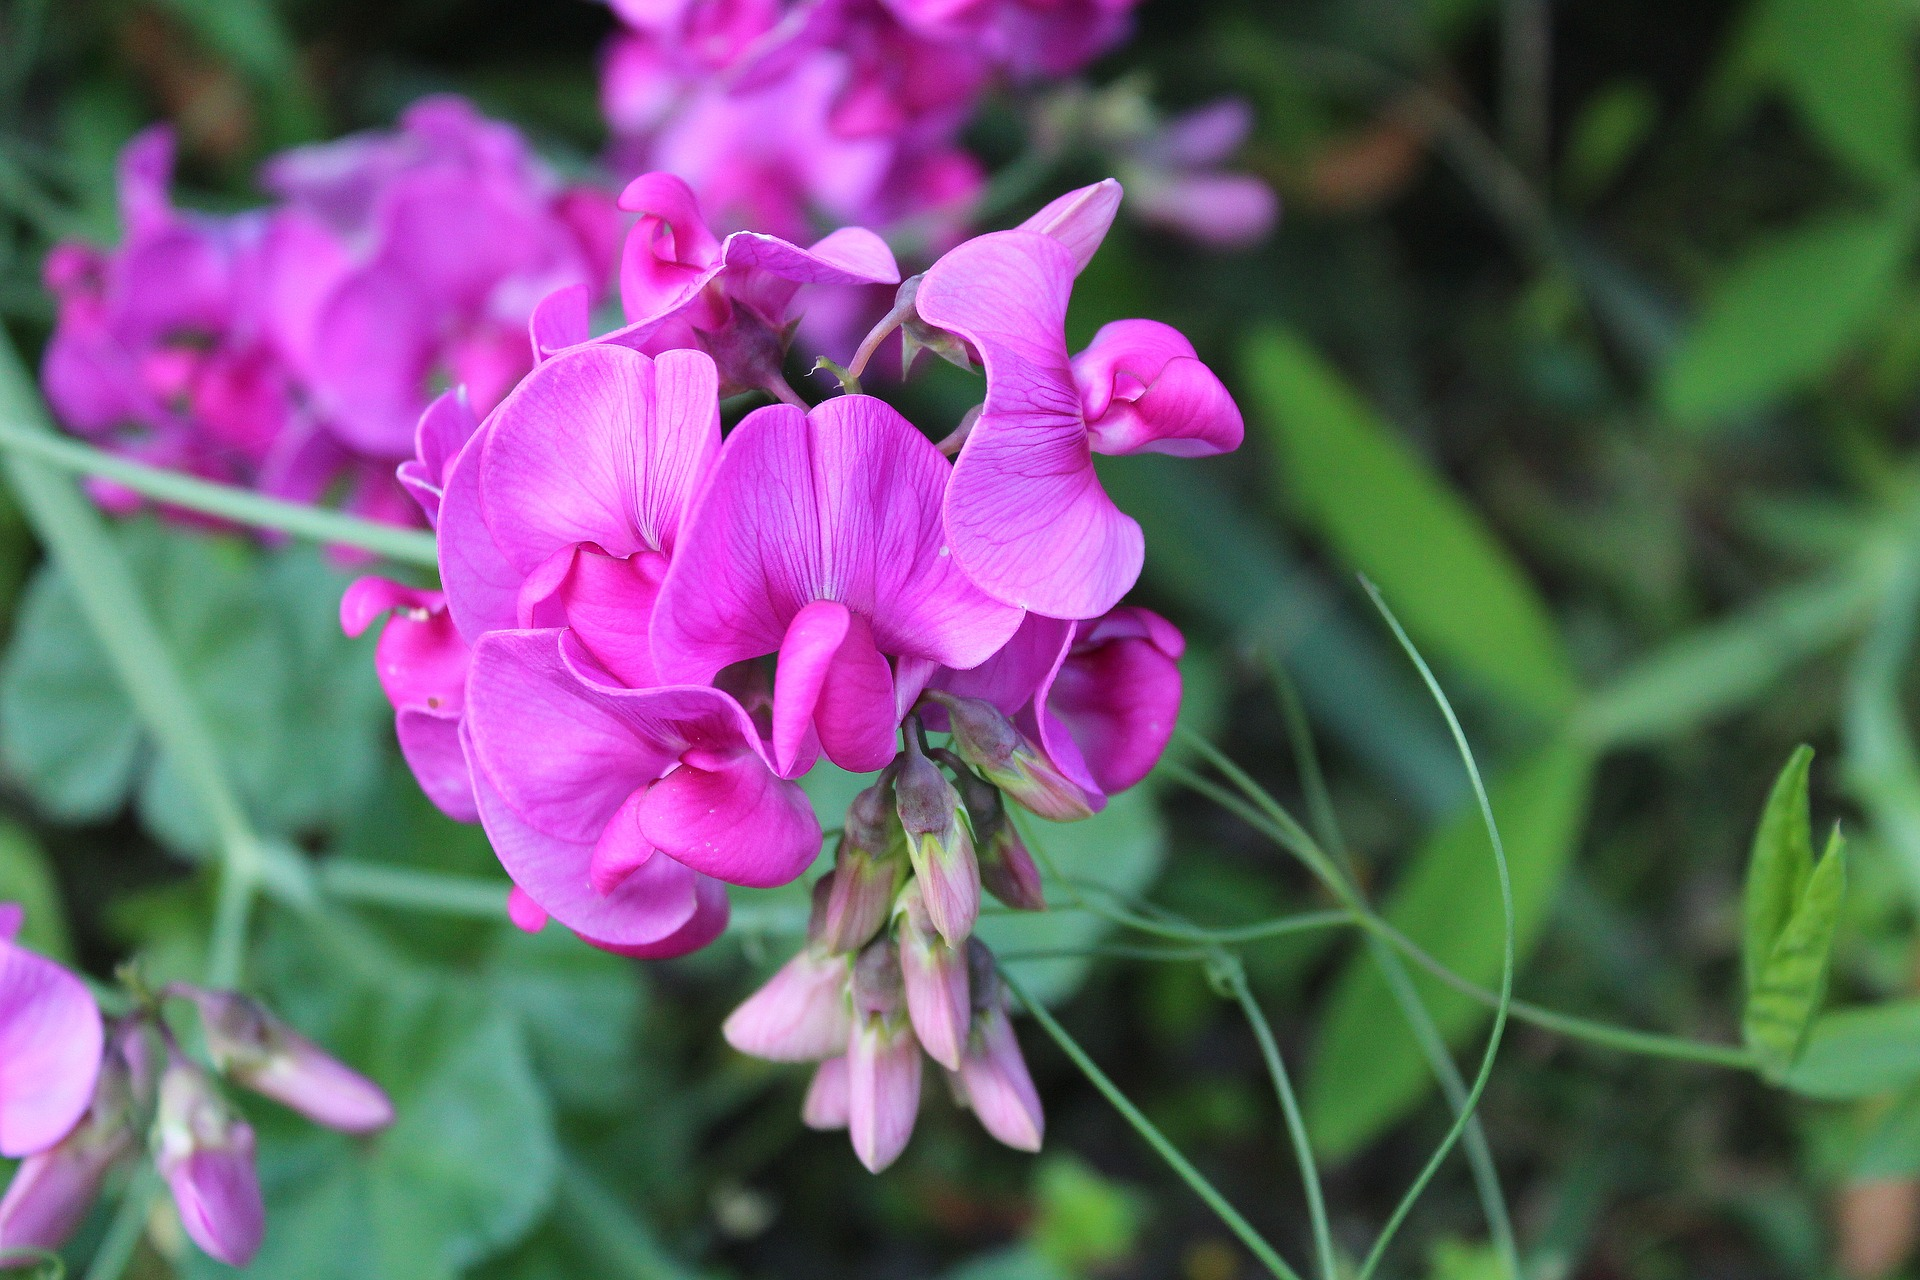 sweet-pea-scented-2766022_1920